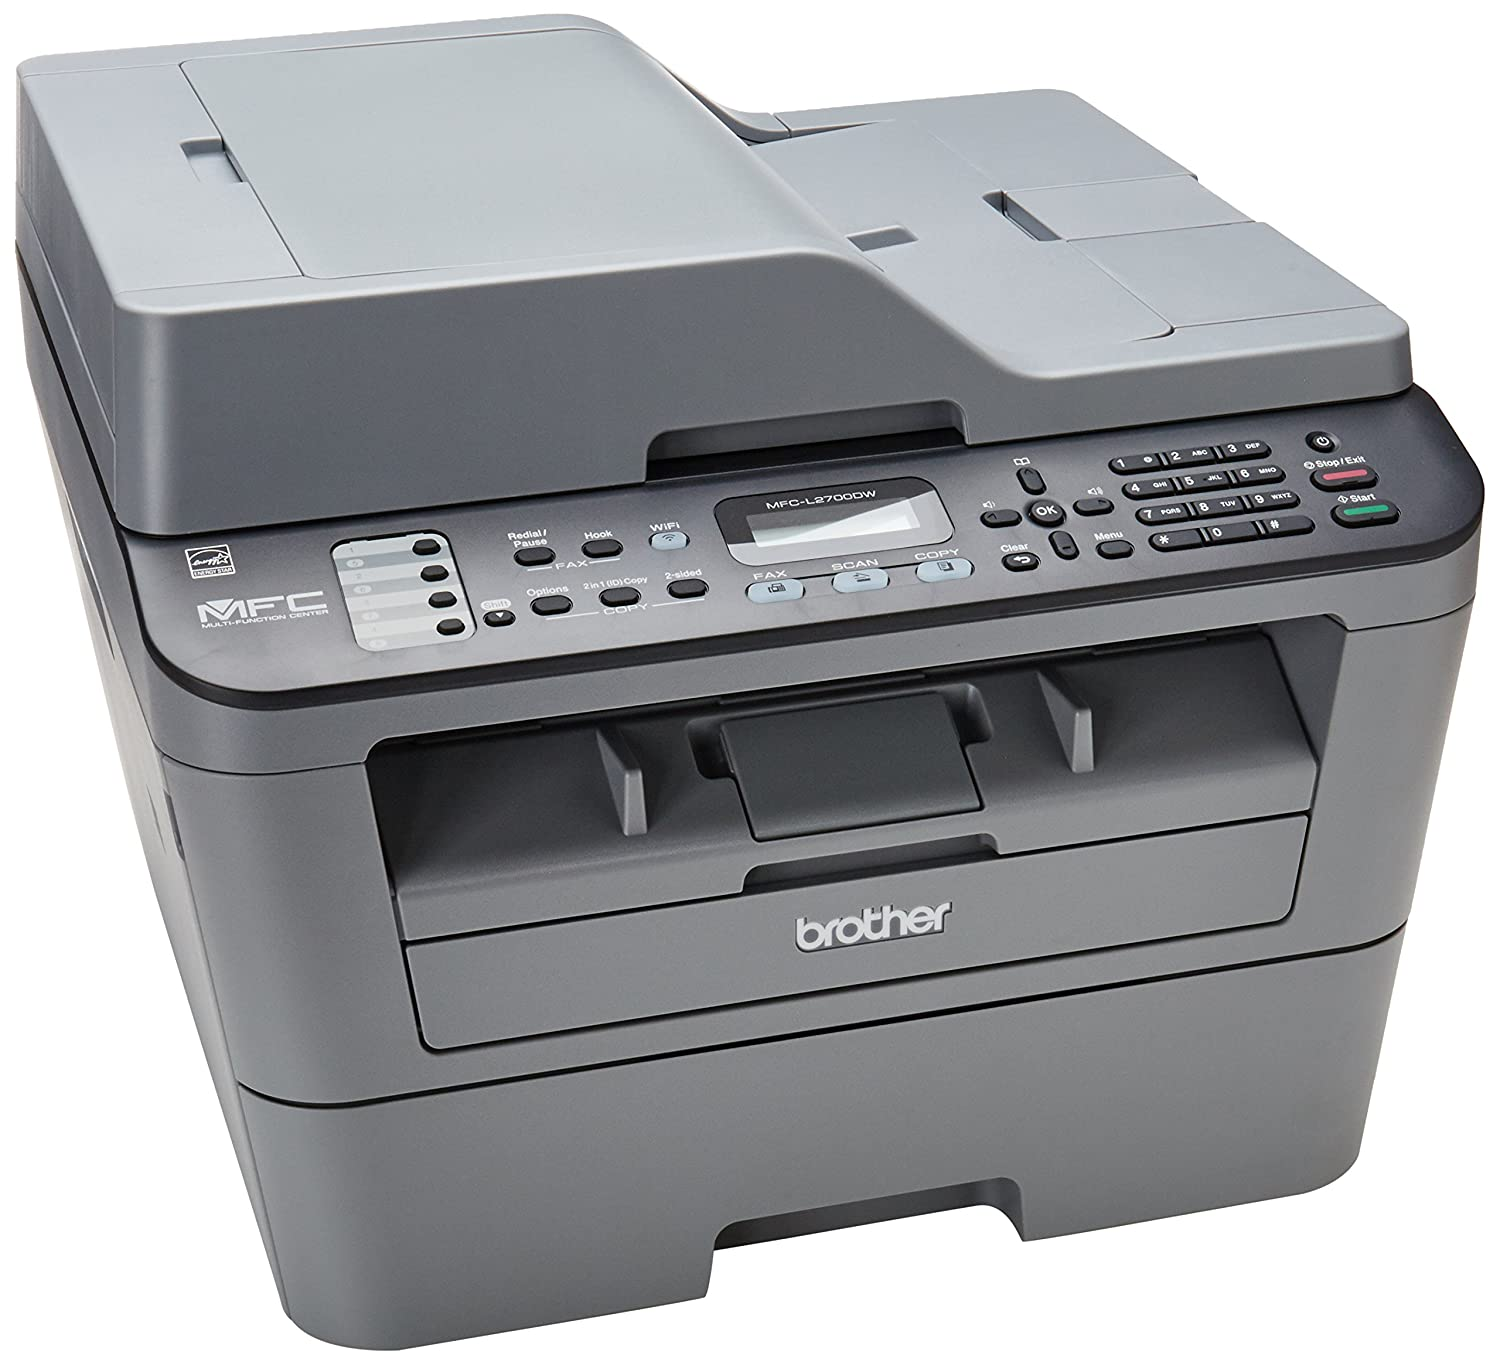 Brother L27010dw Printer Driver